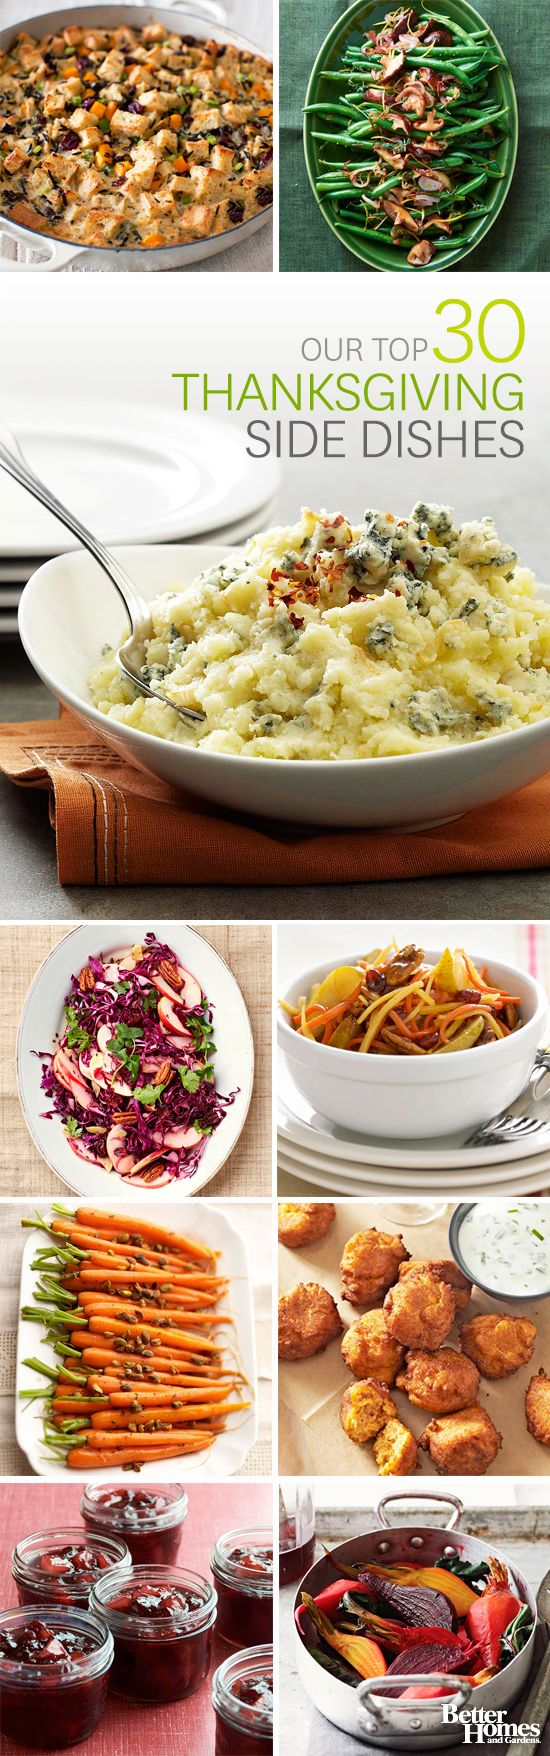 Click through for hundreds of our best holiday appetizers and side dishes: http://www.bhg.com/thanksgiving/sides-appetizers/?socsrc=bhgpin090914thanksgiving